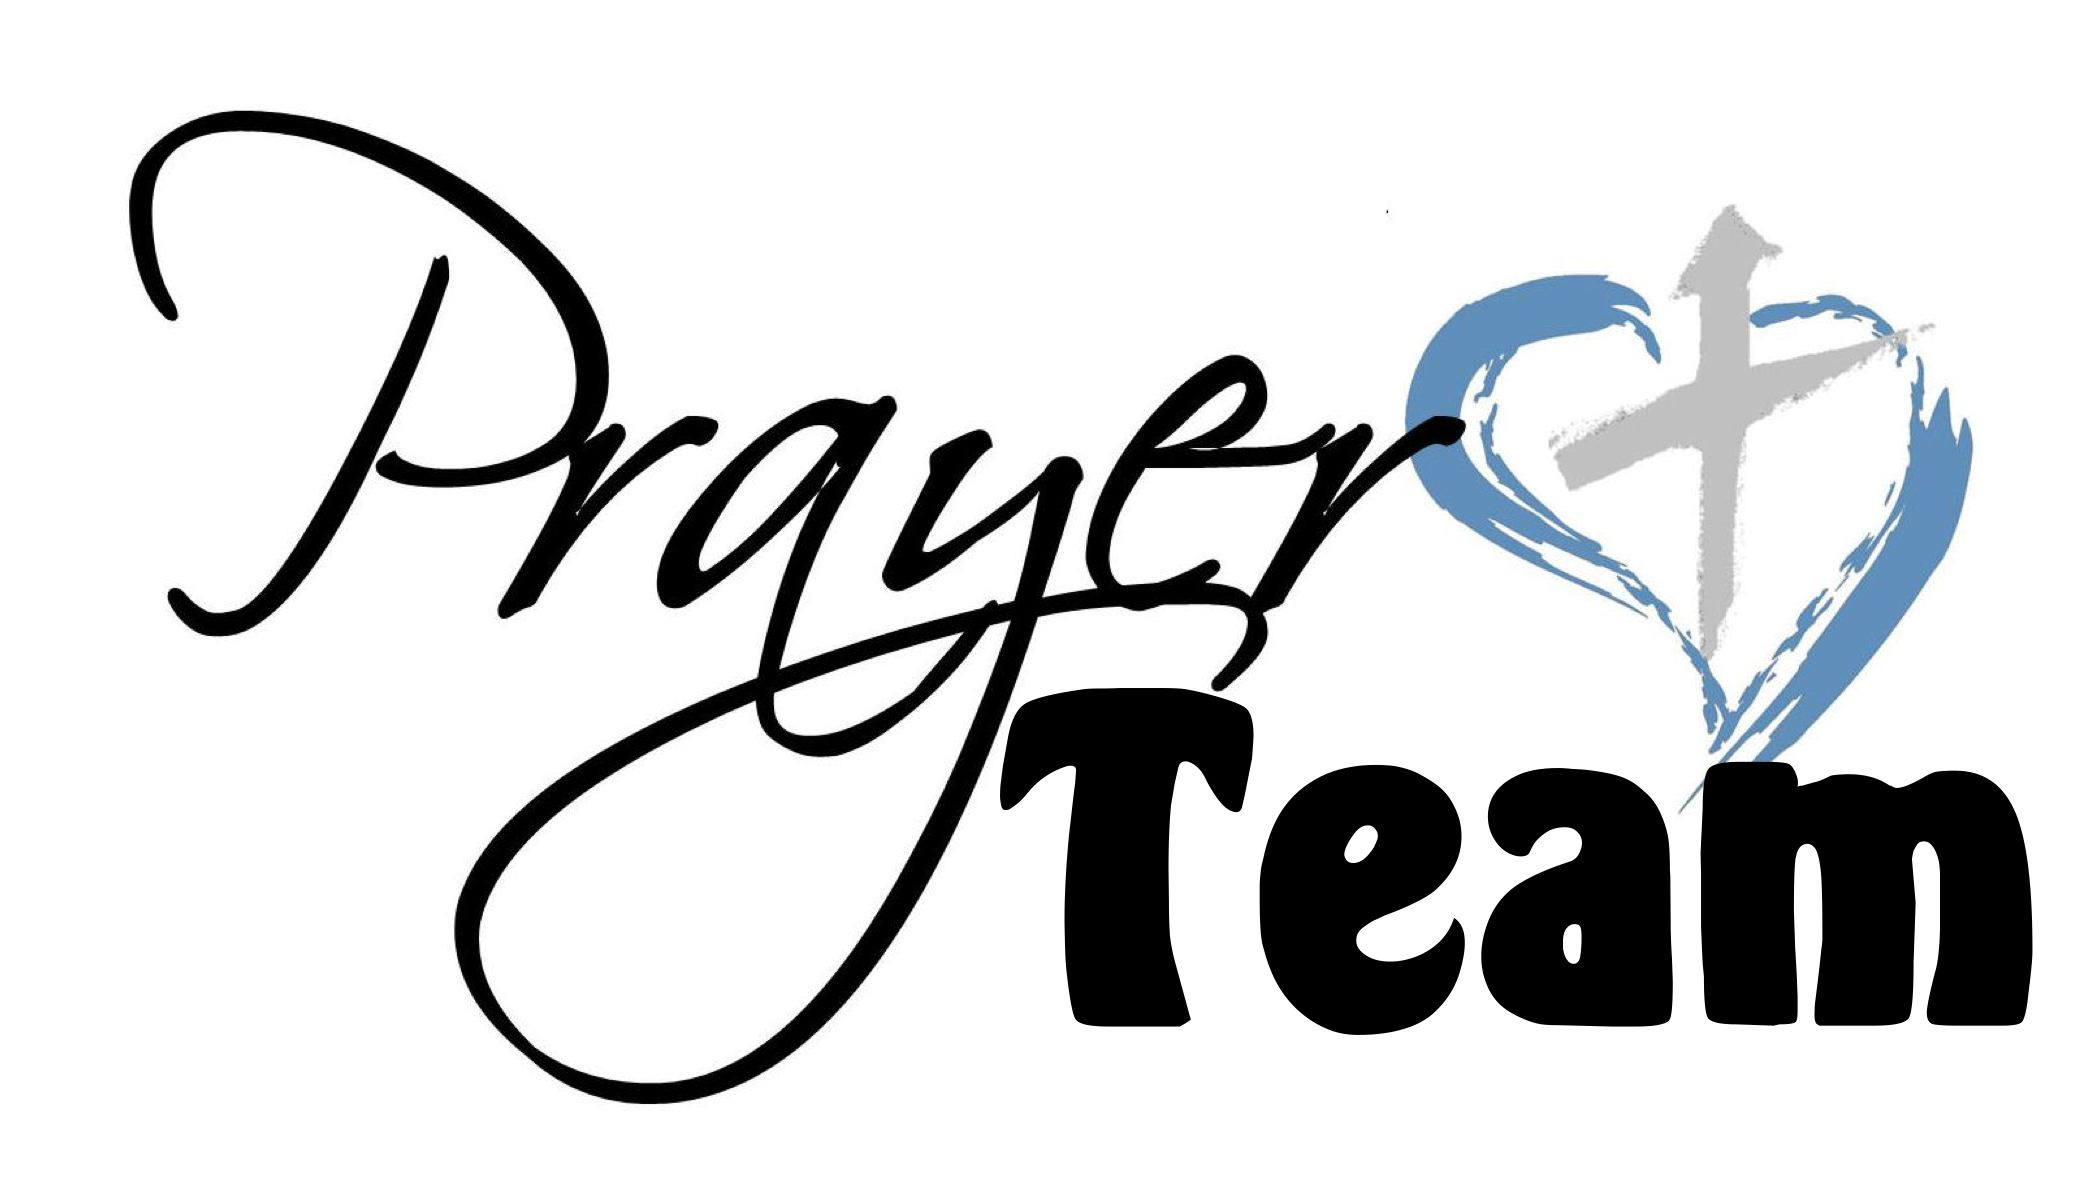 Power of prayer clipart png free Intercessory Prayer Clipart | Free download best ... png free